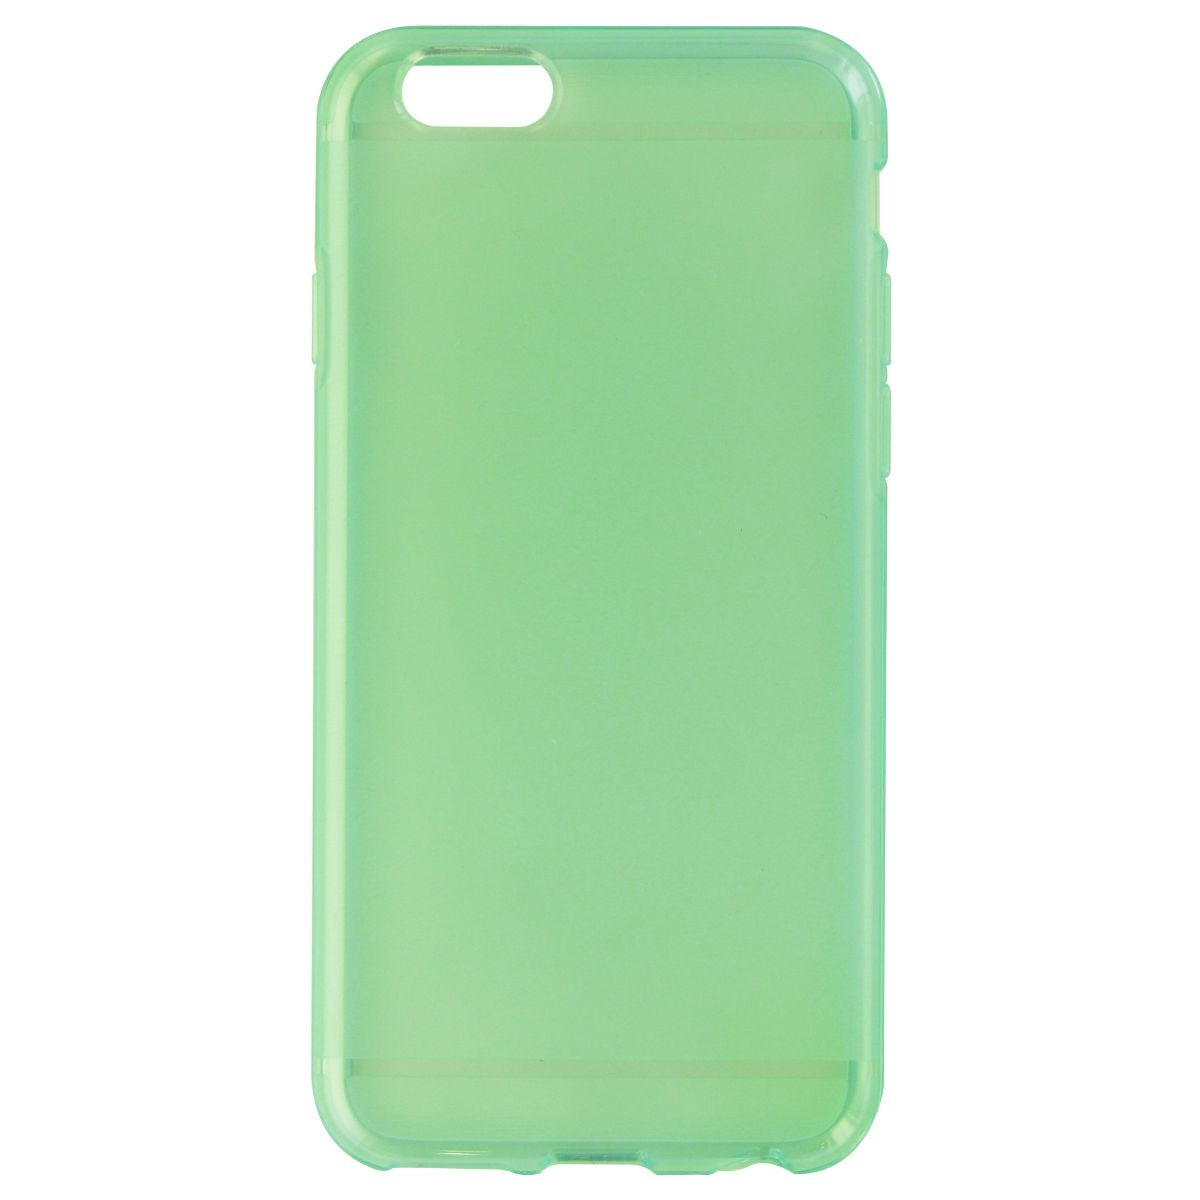 huge selection of 07244 473b8 Details about Verizon High Gloss Silicone Case for Apple iPhone 6S / 6 -  Transparent Green